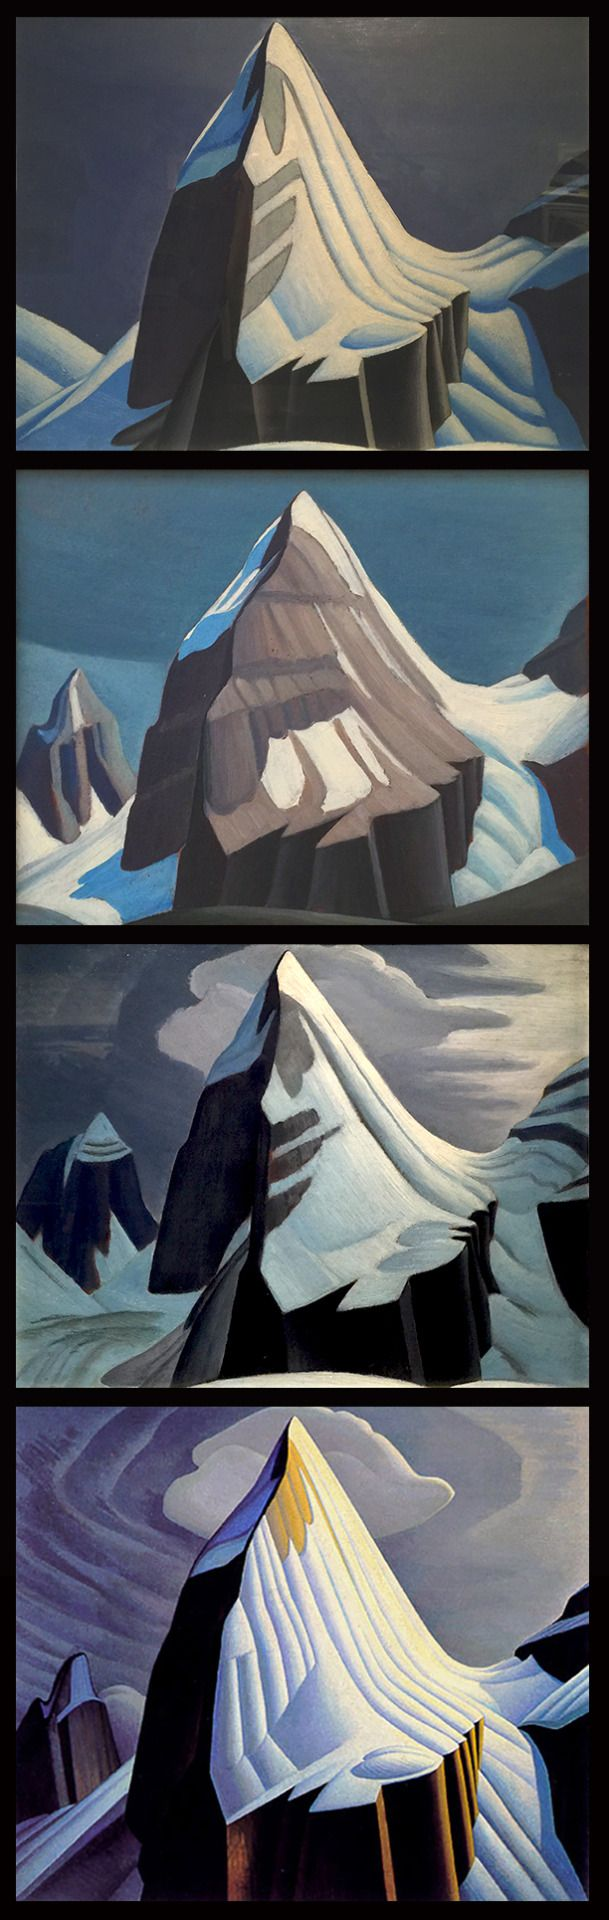 I was very interested to see the similarities and the differences in the studies and then the final work for Mr. Lawren Harris's masterwork of Mt. Lefroy. Three studies first and the final at the bottom. I love them all, but I feel he incorporated all that was best about his studies into the larger piece. He was Modernist Giant!